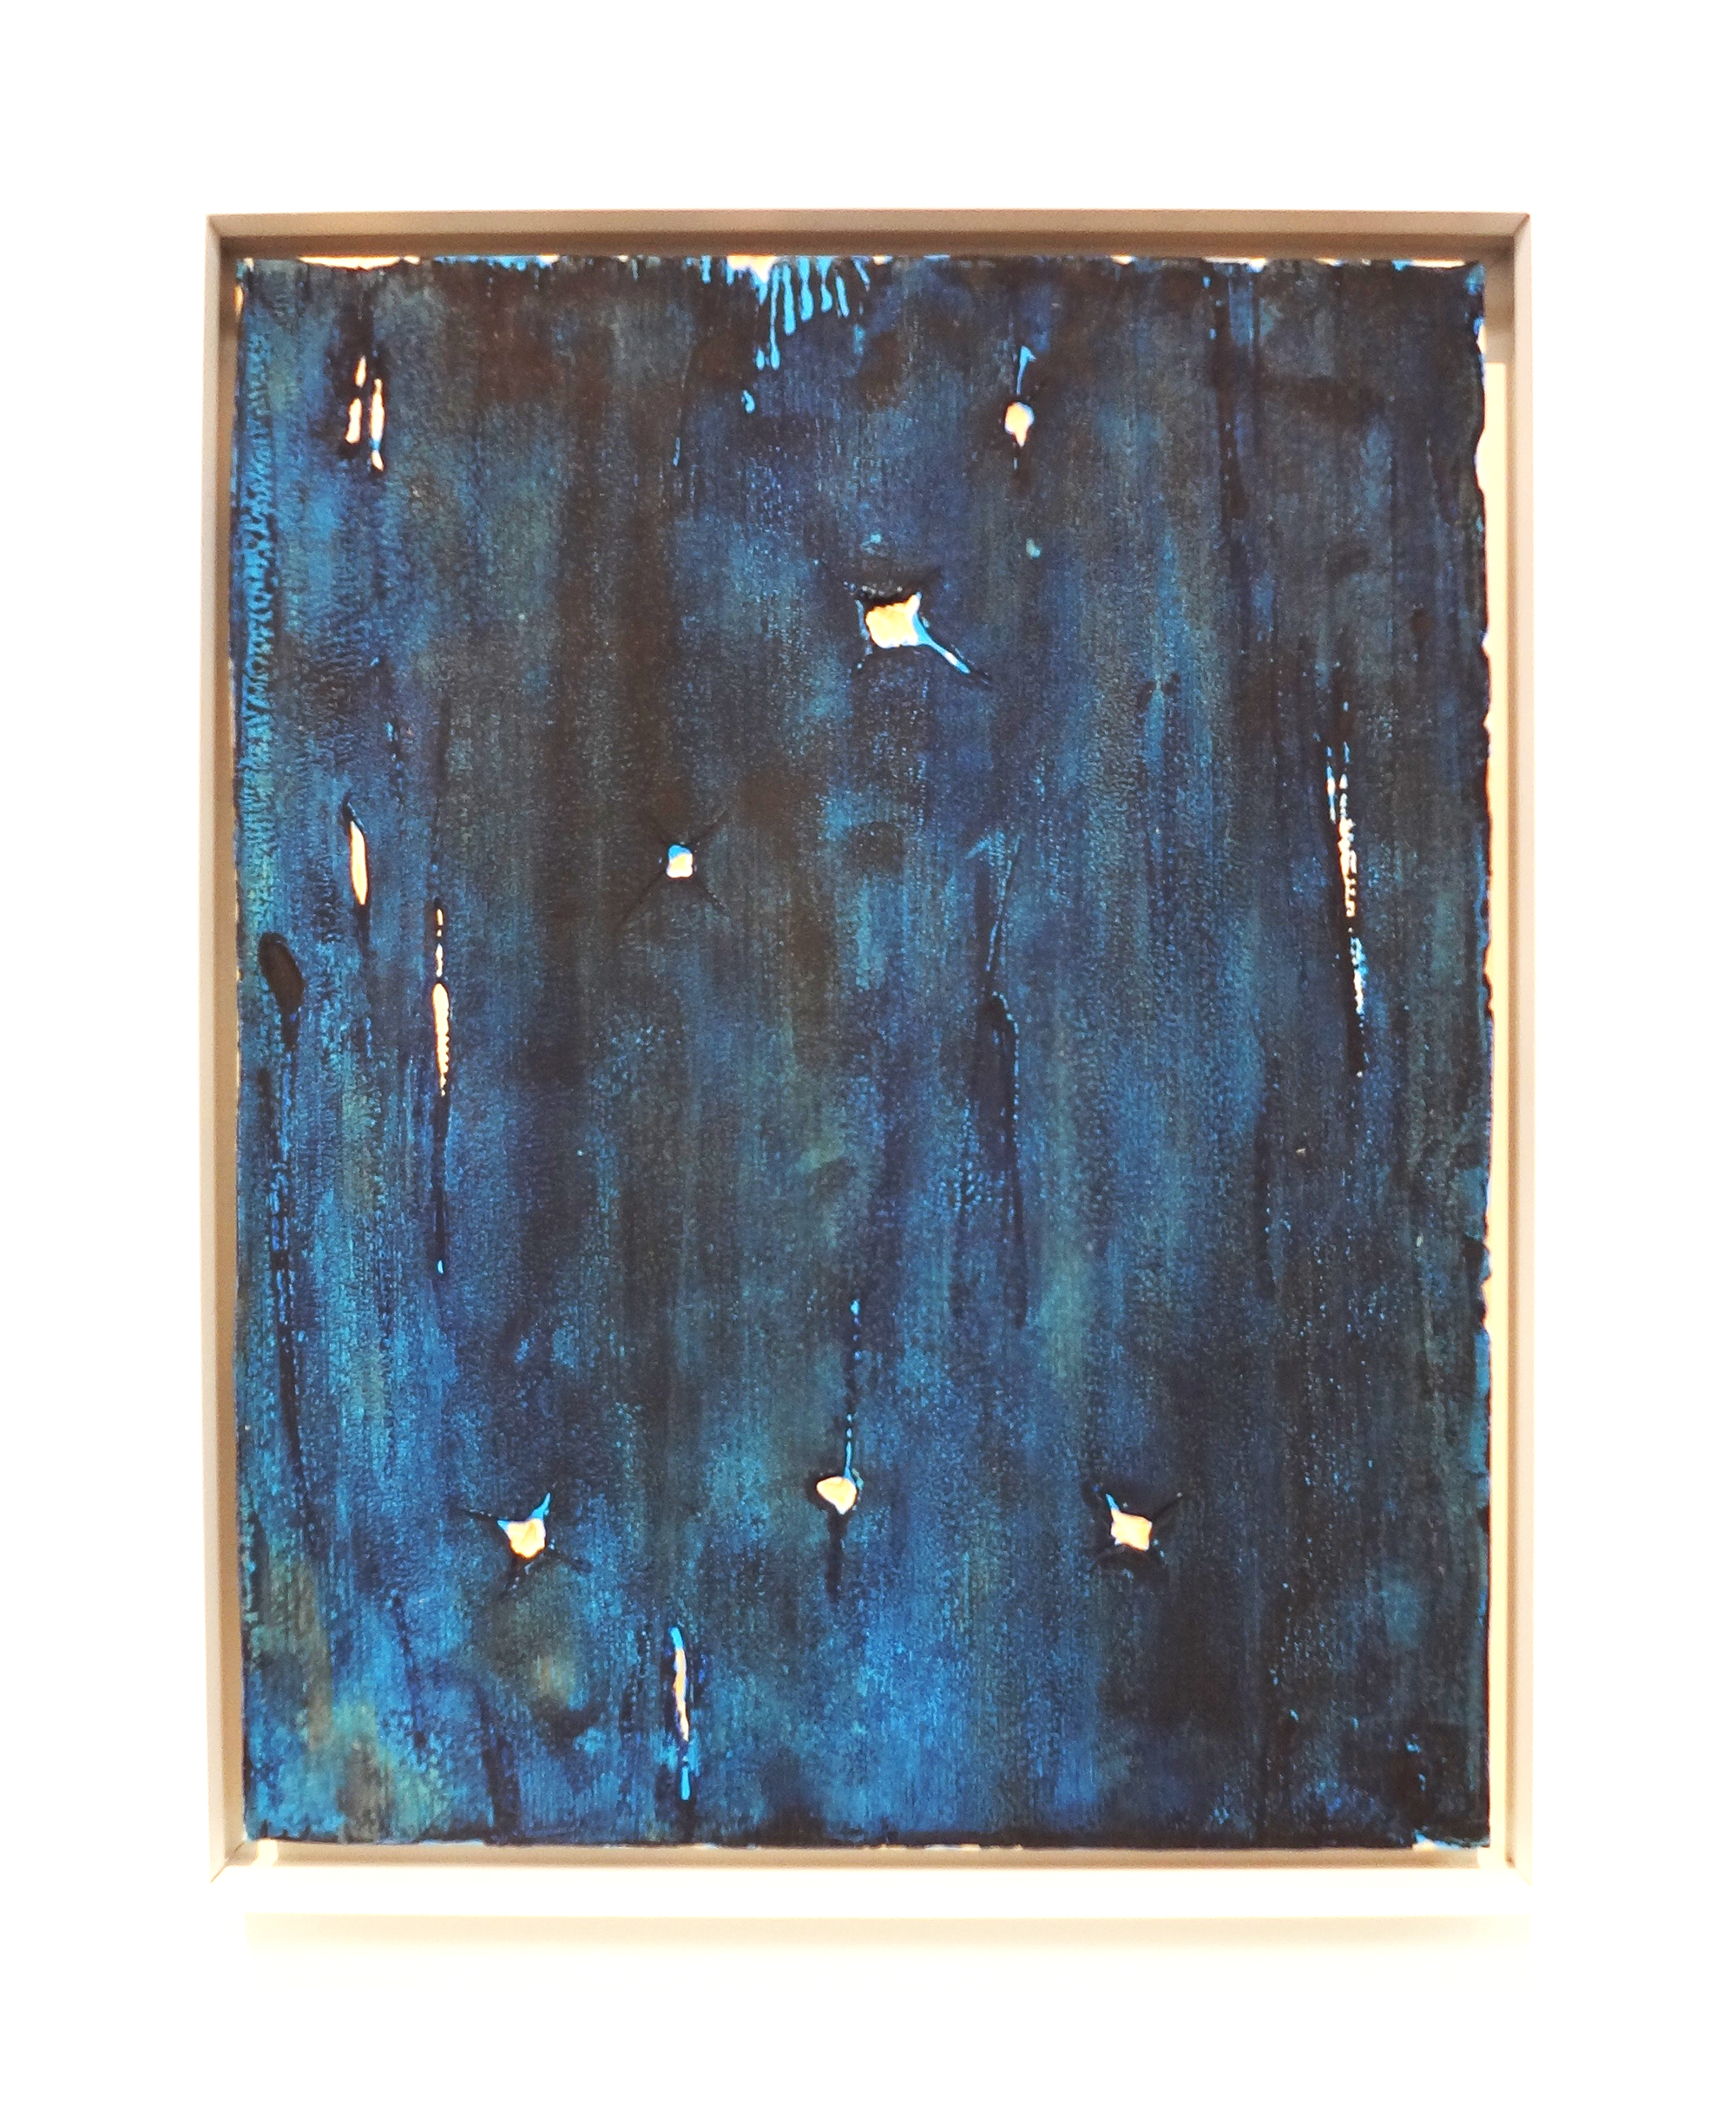 Meghan Gerety  11.11.15 9:11PM SW , 2015 blockprint ink on plywood, 15 x 12 in.framed in aluminum